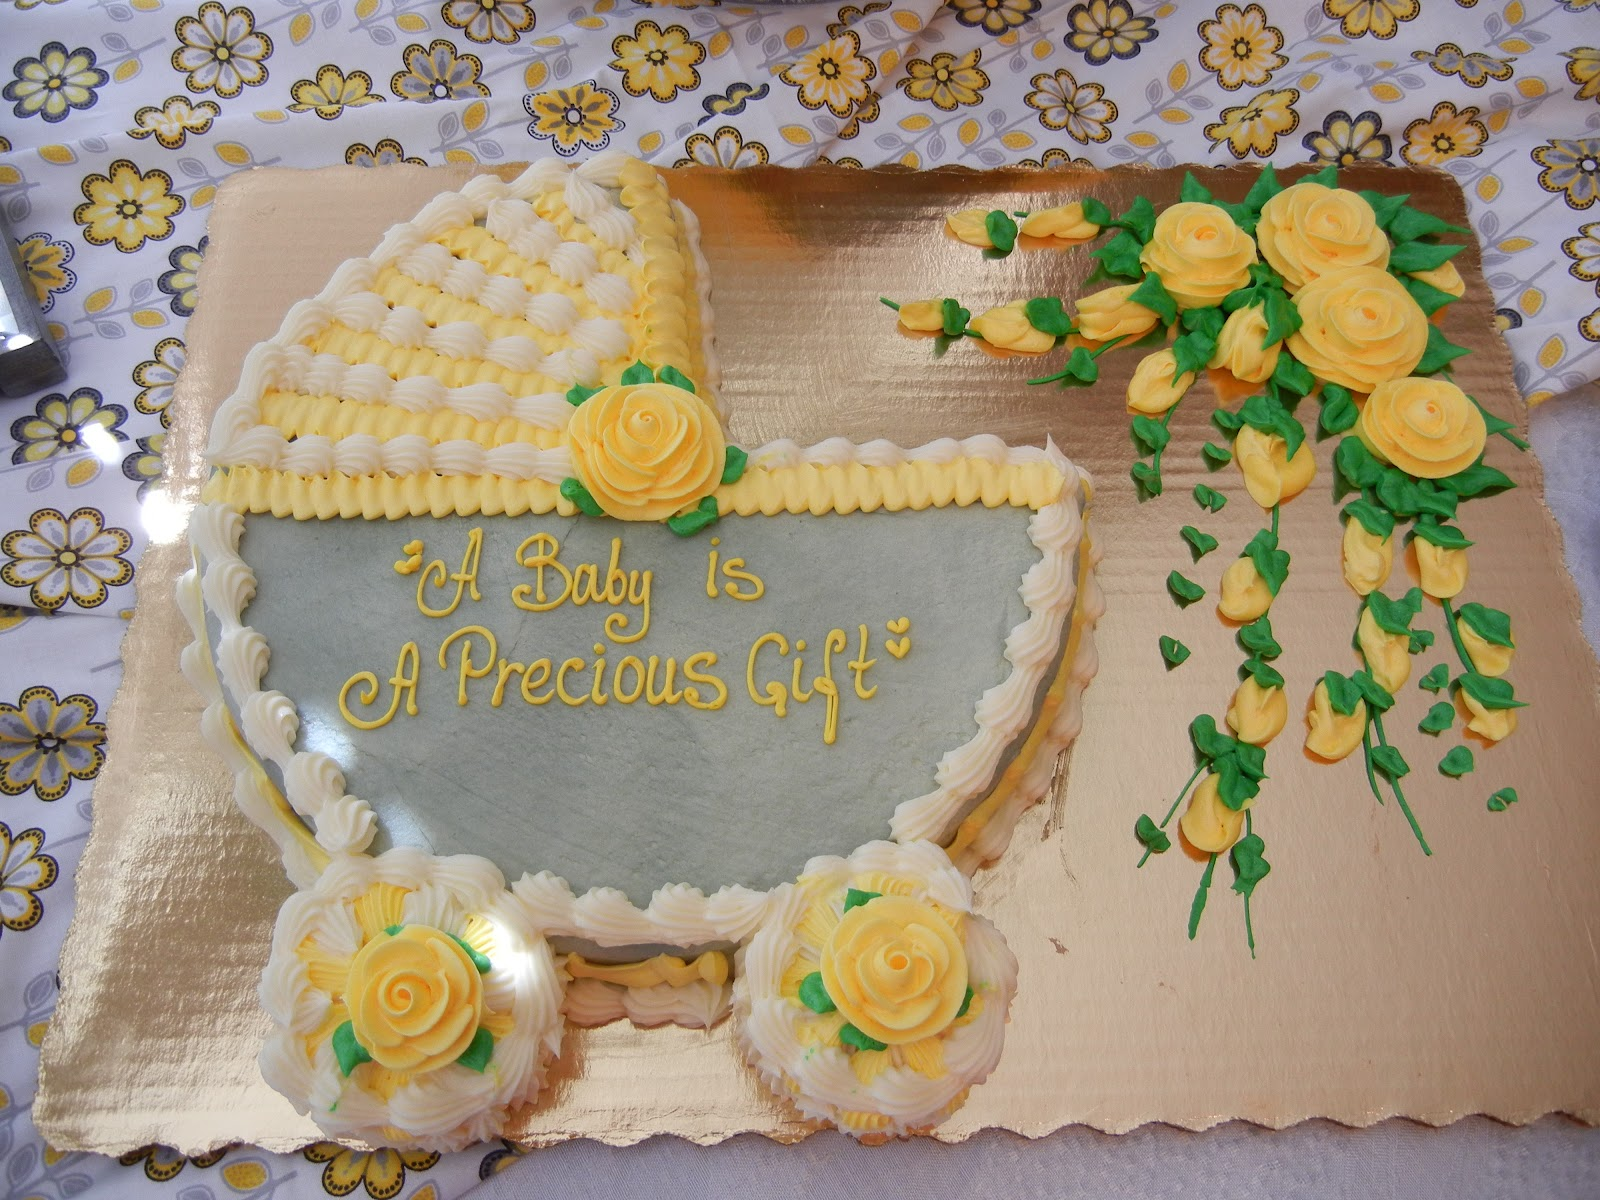 Baby Shower Cakes: Baby Shower Cakes From Publix